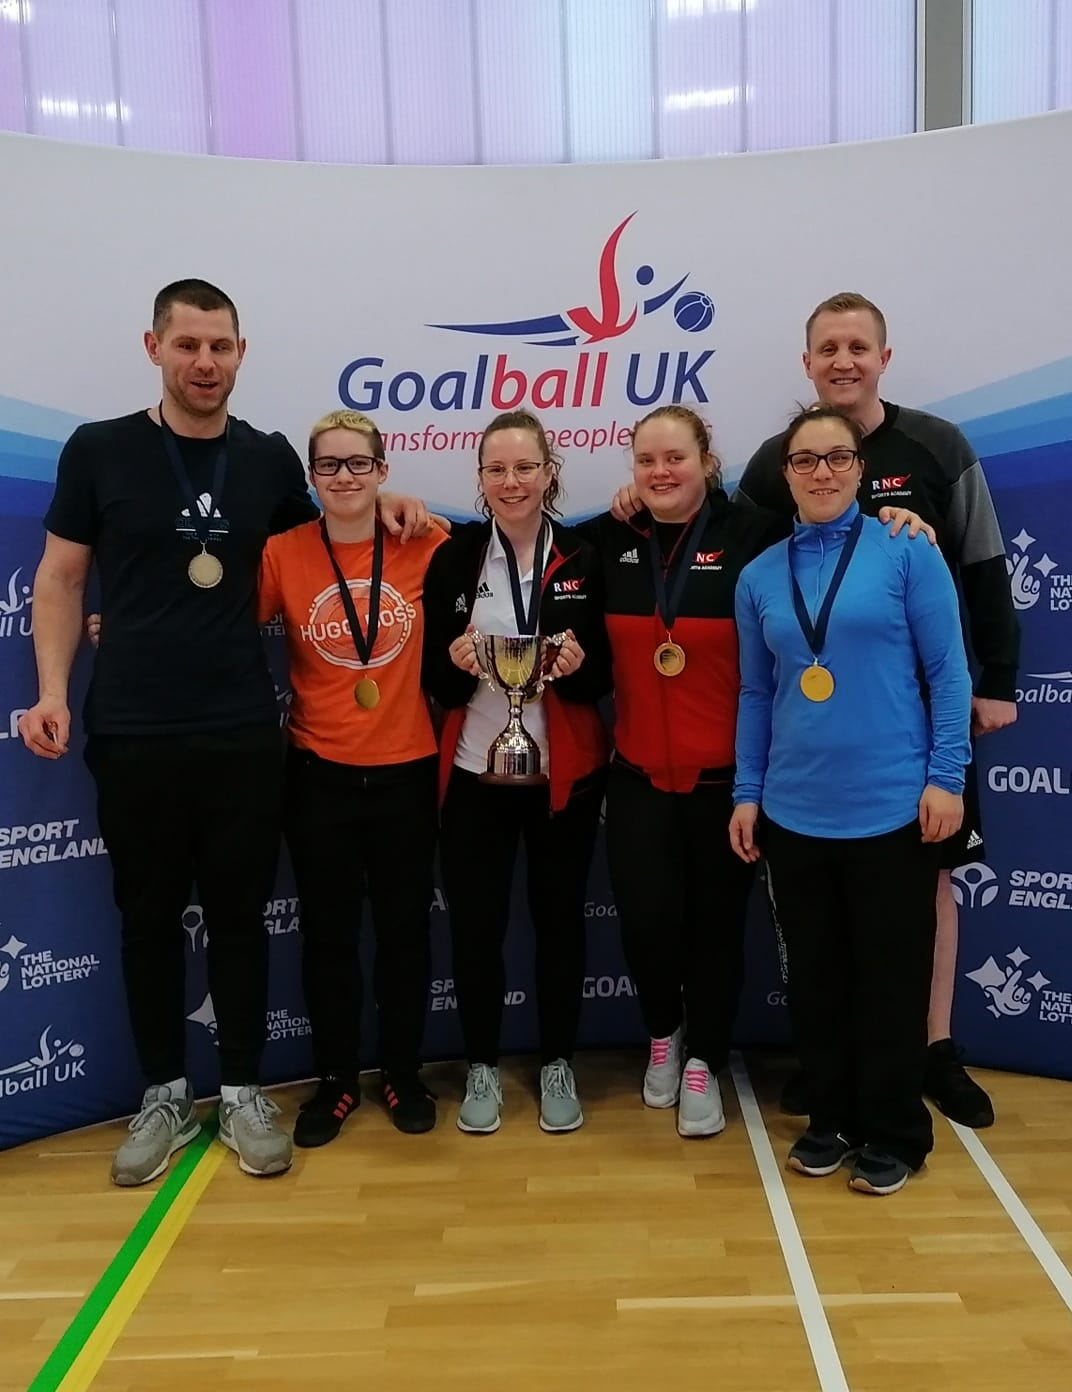 Coach's corner – the return of goalball!